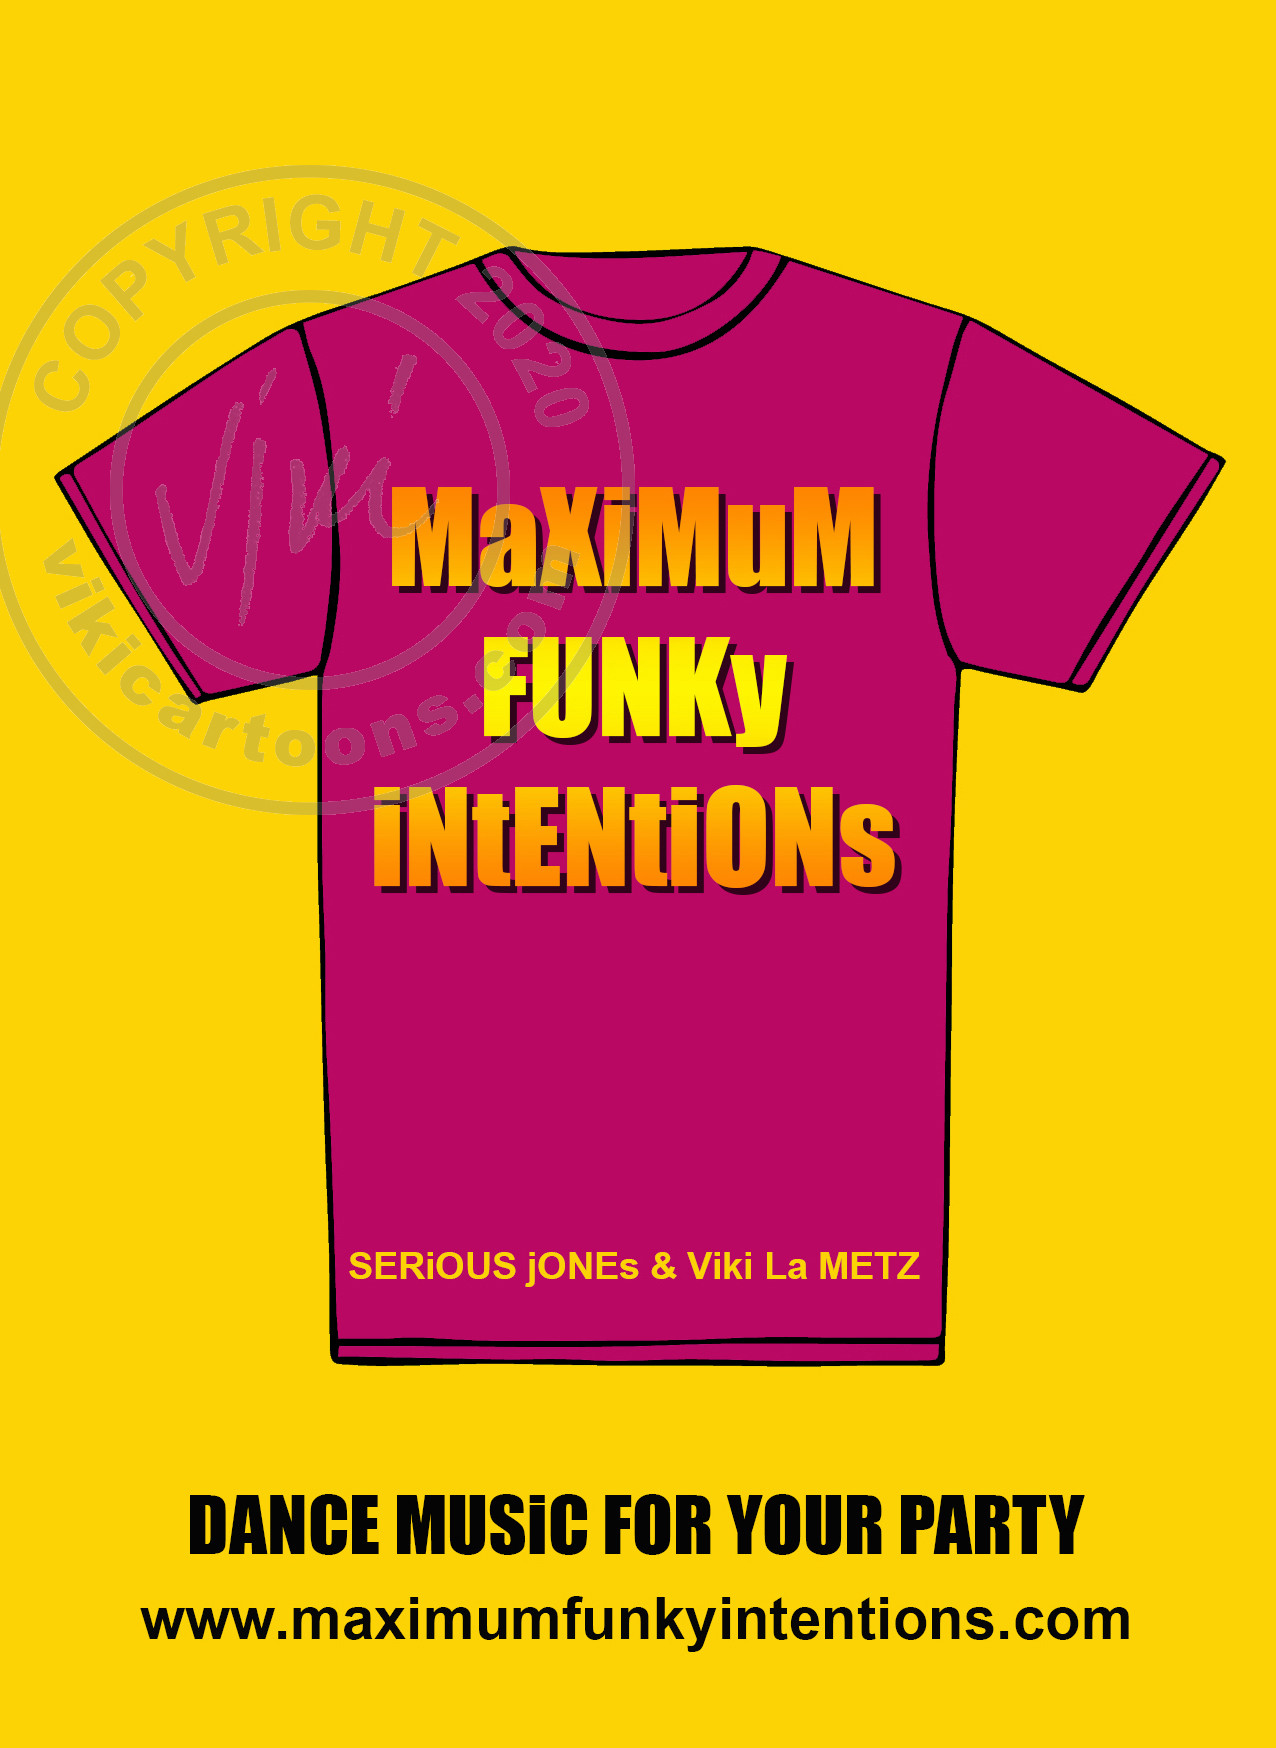 Poster for Maximum Funky Intentions